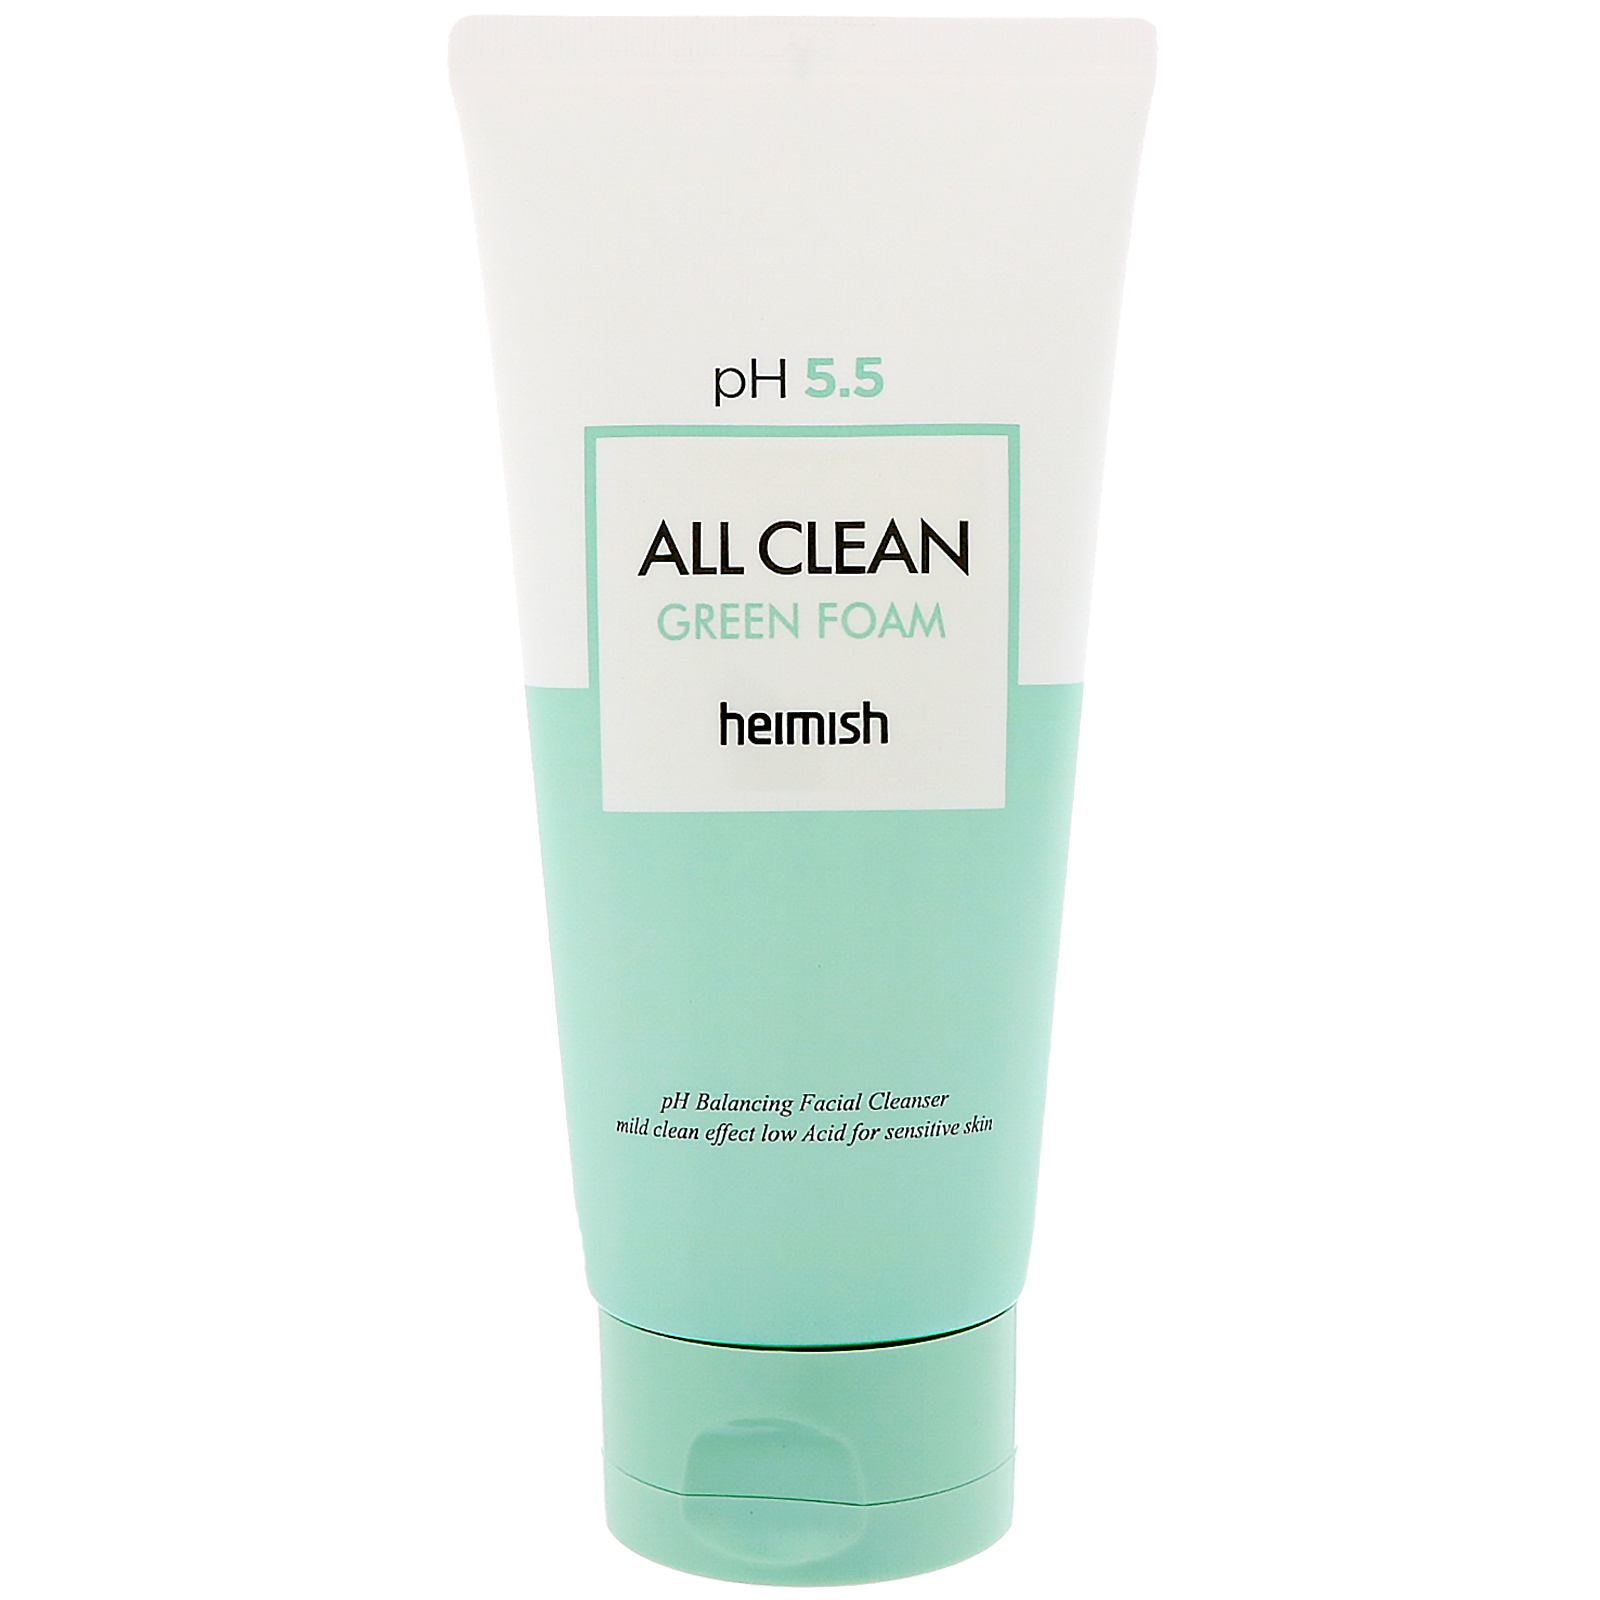 Best Face Washes For Treating And Getting Rid Of Acne Scars Heimish All Clean Green Foam Cleanser